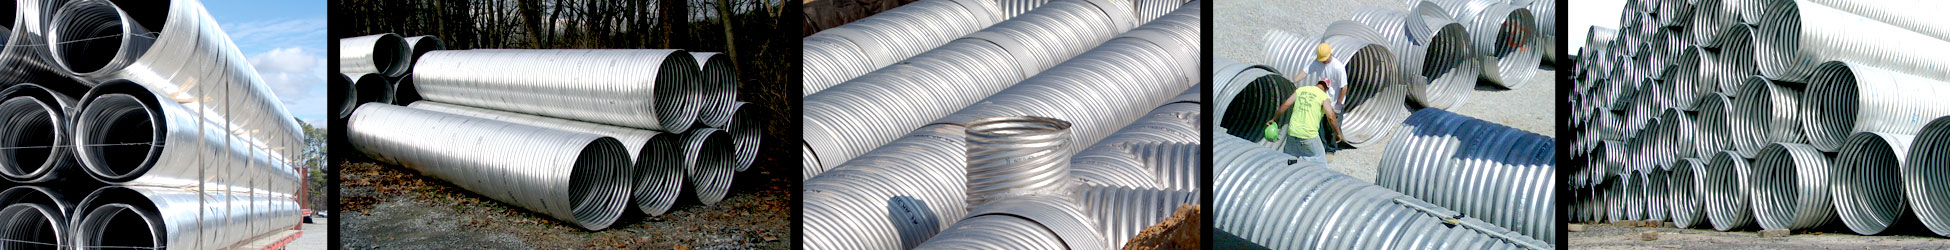 Corrugated Aluminum Alloy Pipe